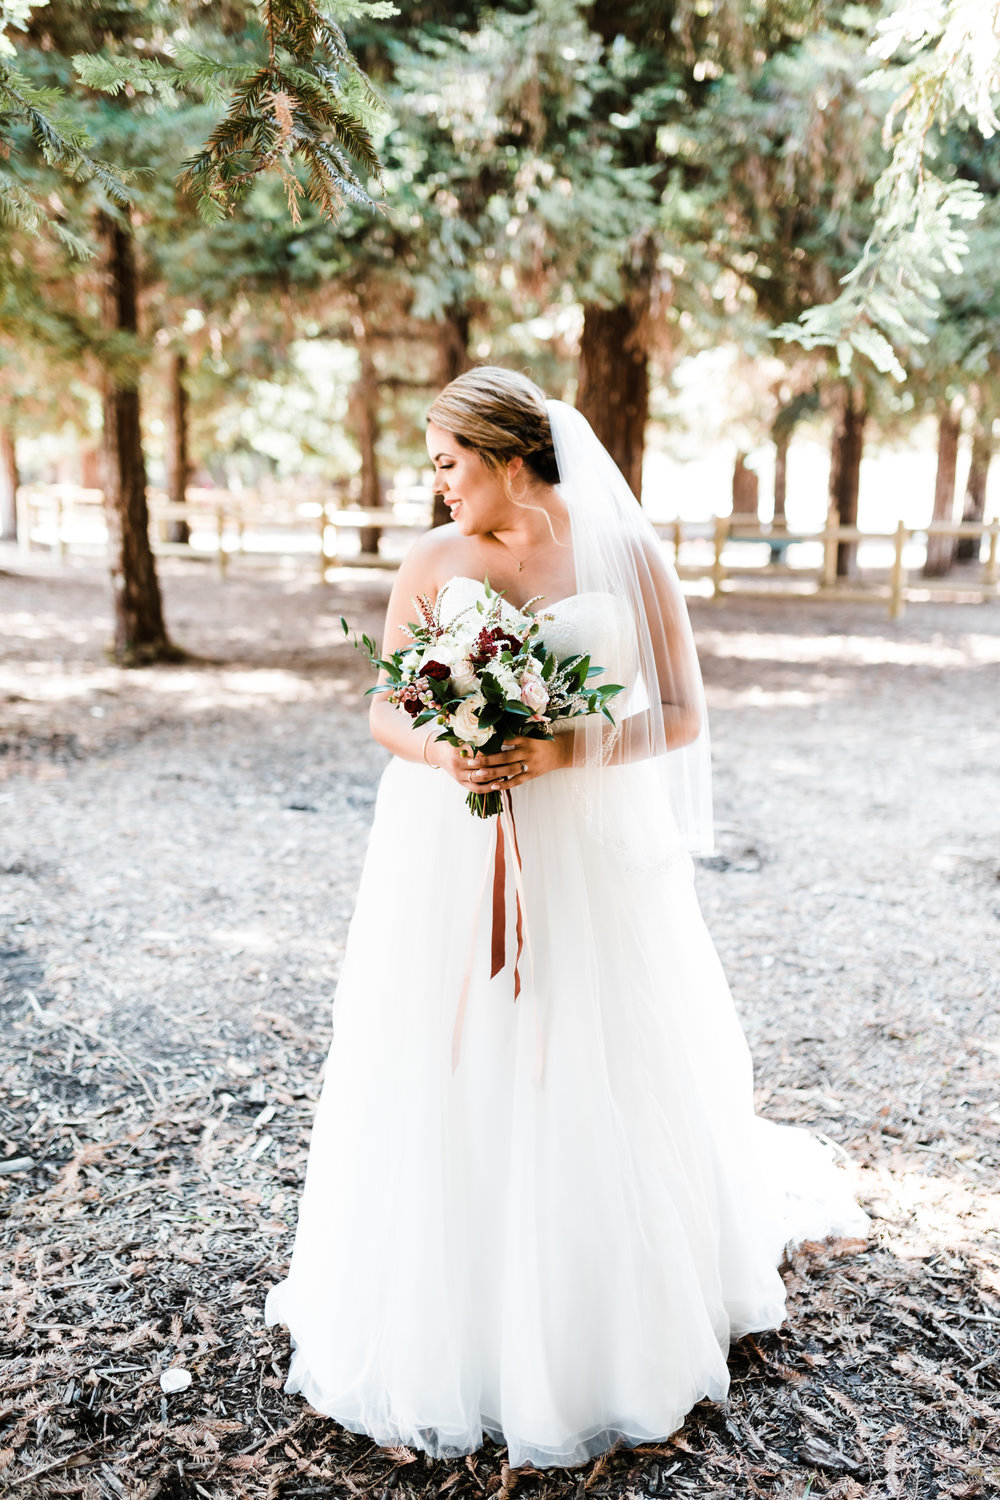 Clarisse-Rae-Southern-California-Wedding-Photographer-Bridal-Bouquet-Inspiration-1